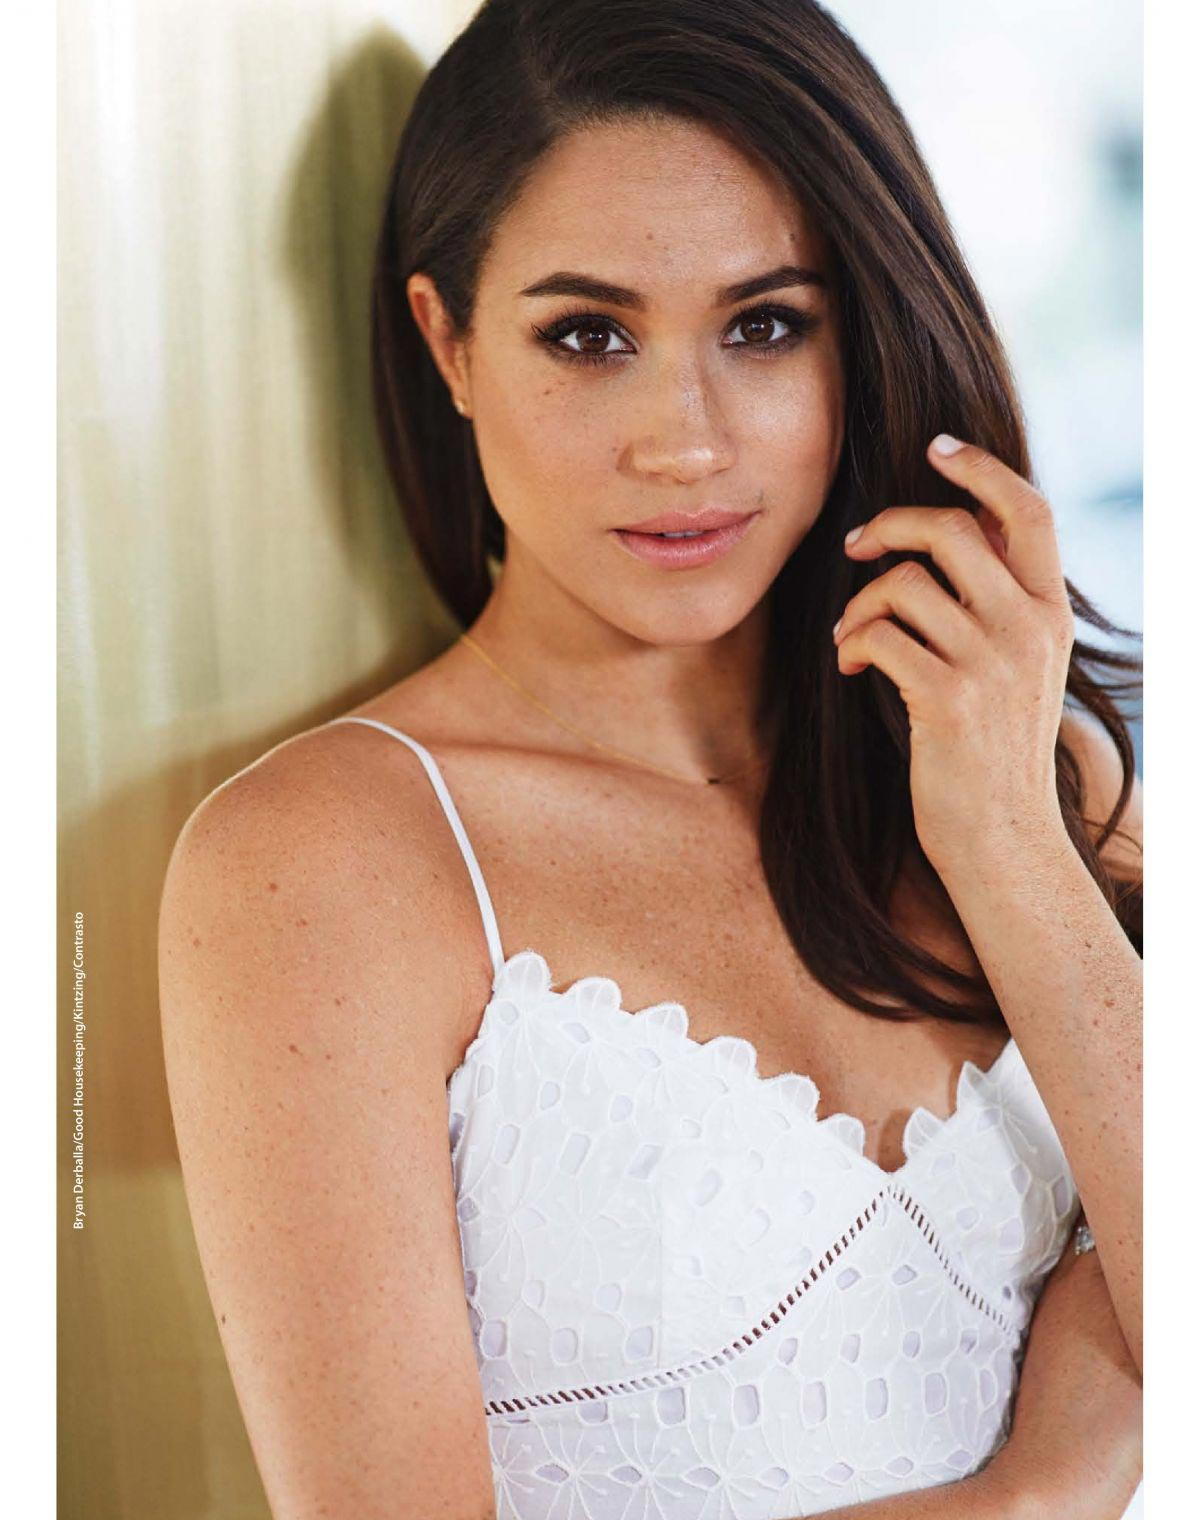 Meghan Markle in F Magazine, N31 August 2018 1